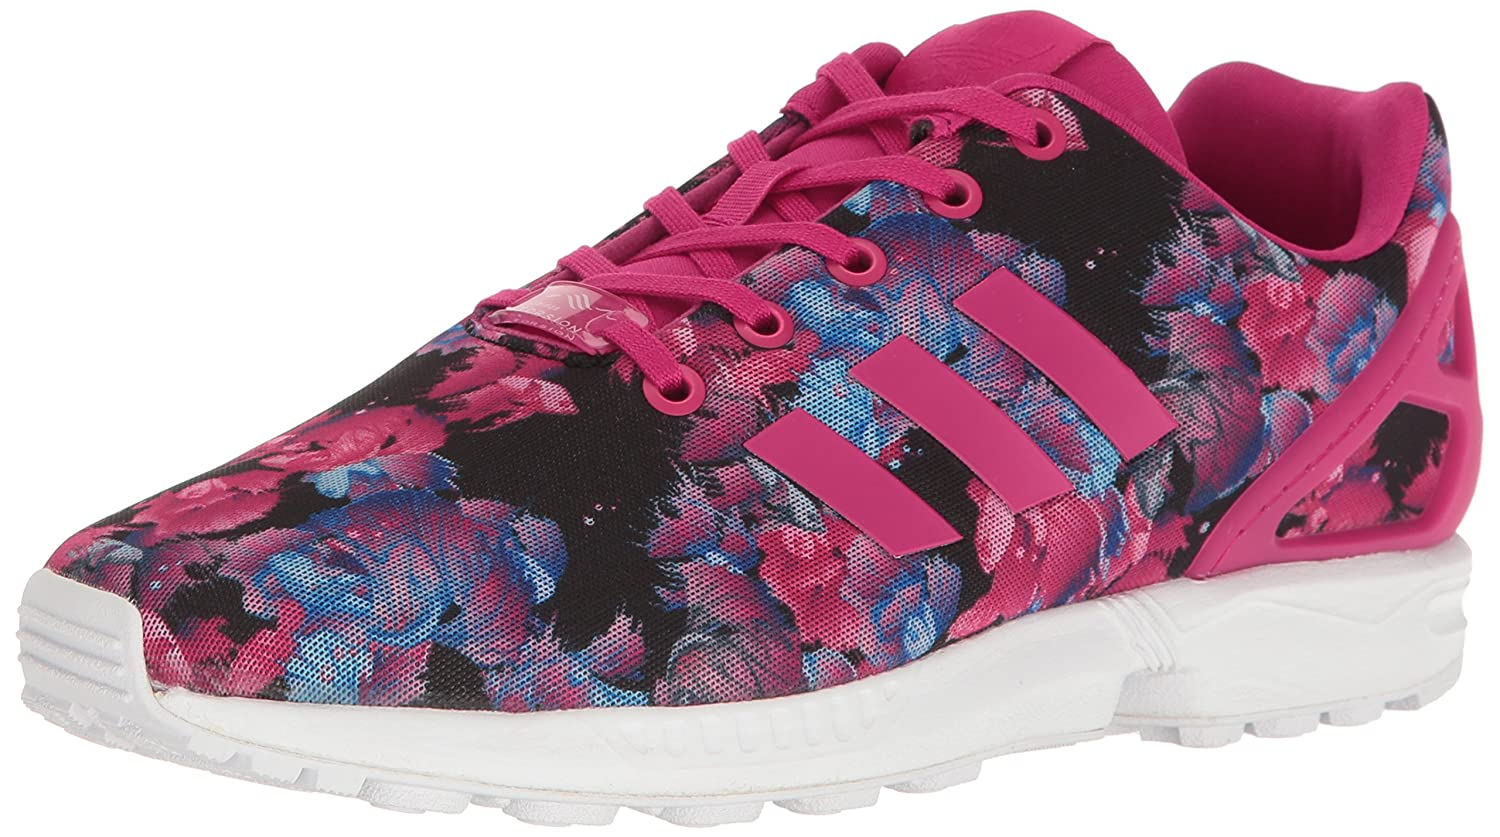 low priced 8b798 705ed adidas Kids' Zx Flux J Sneaker